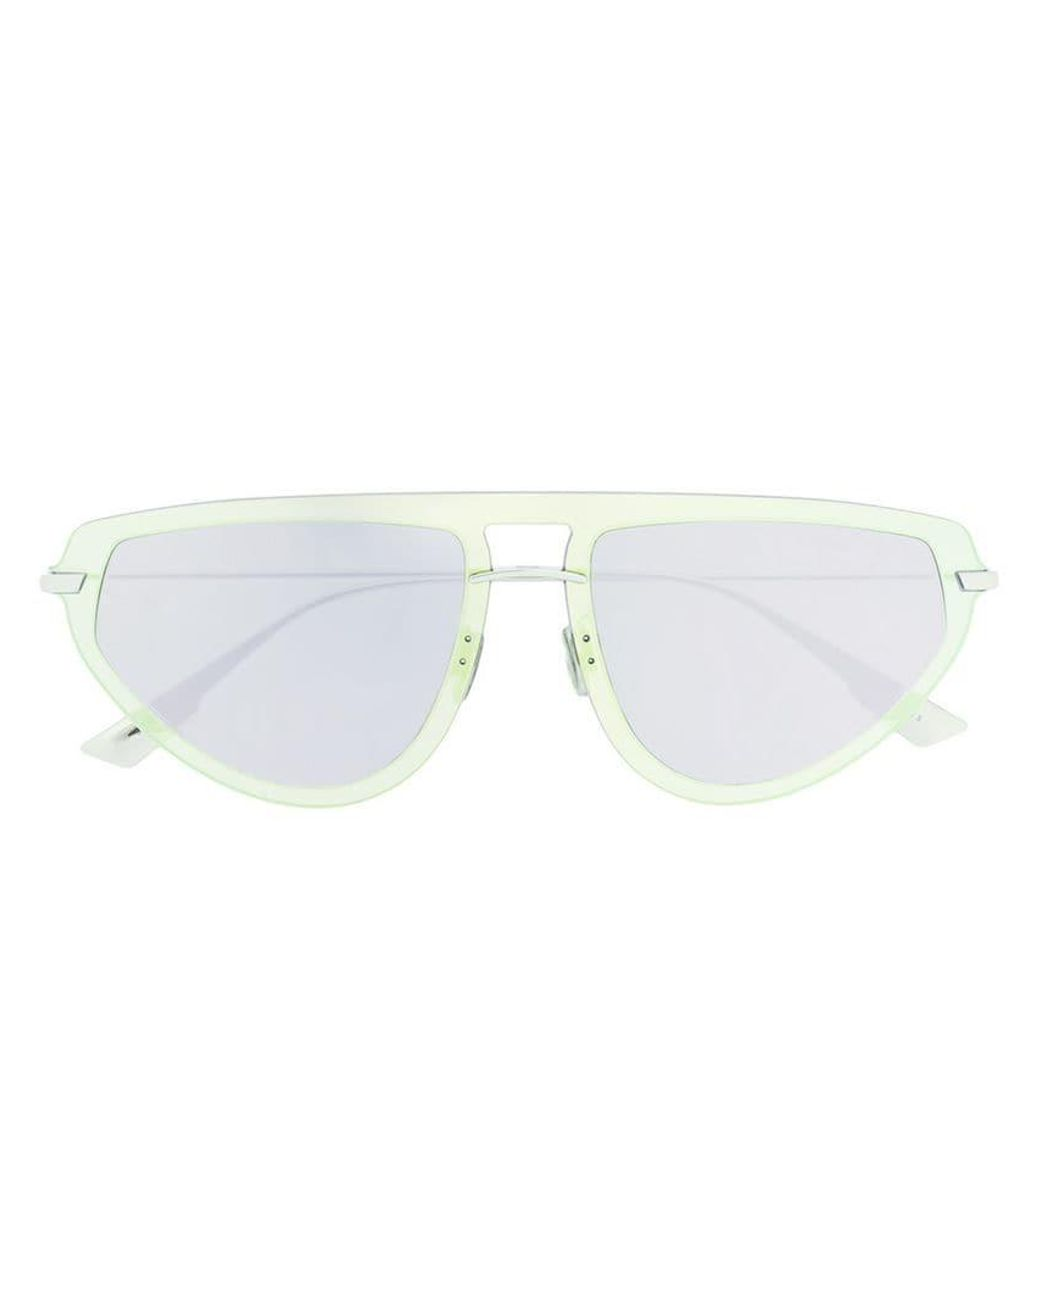 d2532a0385e67 Dior Round Tinted Sunglasses in Blue - Lyst